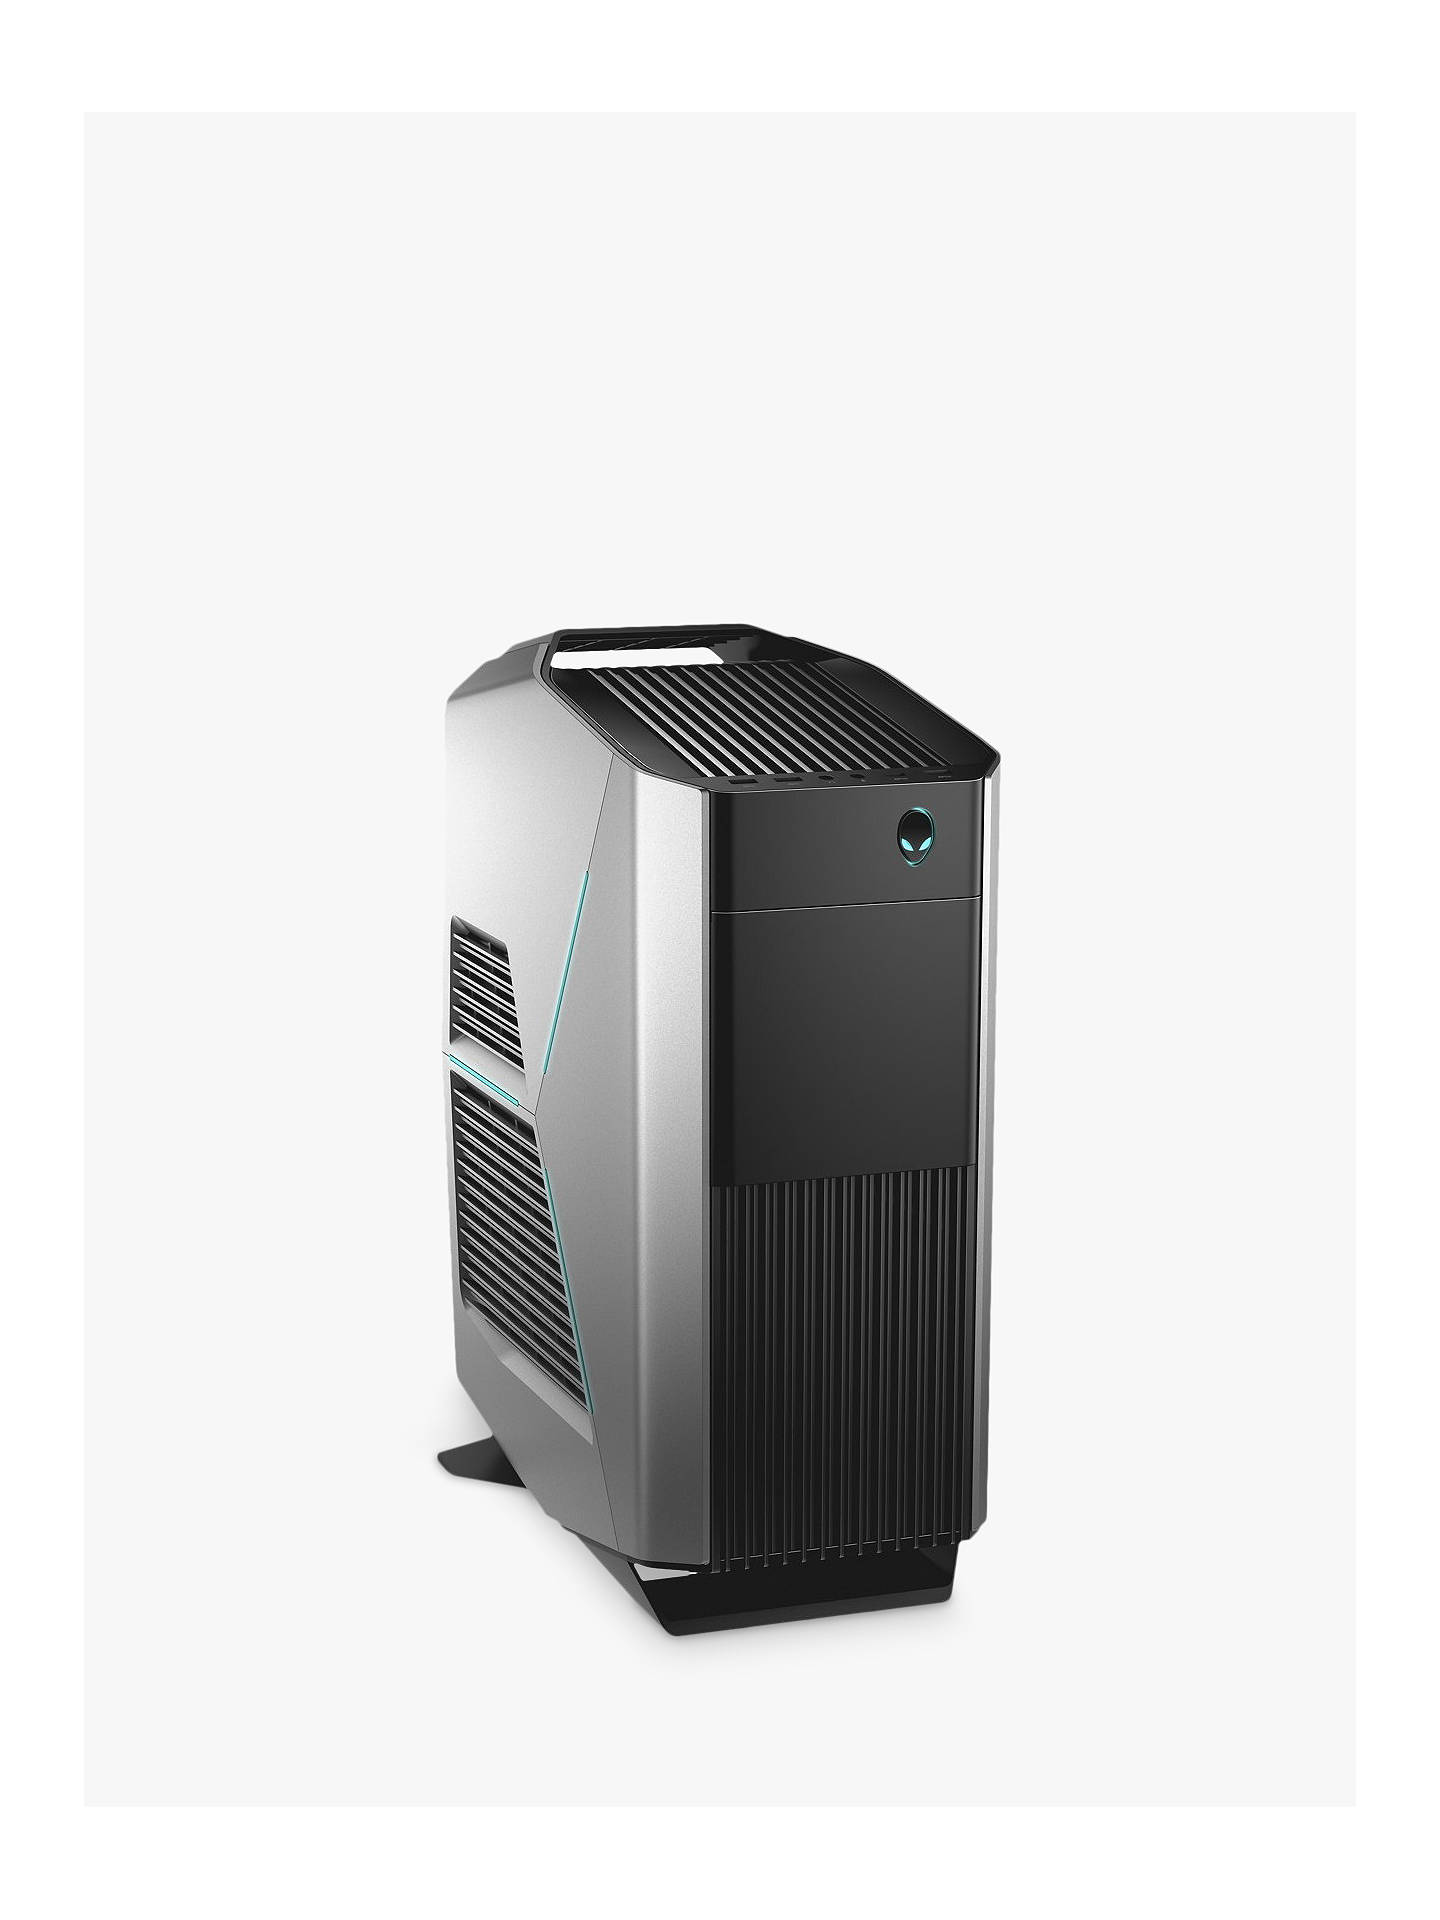 Fine Alienware Aurora R8 Gaming Pc Intel Core I7 Processor 32Gb Ram 2Tb Hdd 512Gb Ssd Nvidia Geforce Rtx 2080 Ti Epic Silver Interior Design Ideas Tzicisoteloinfo